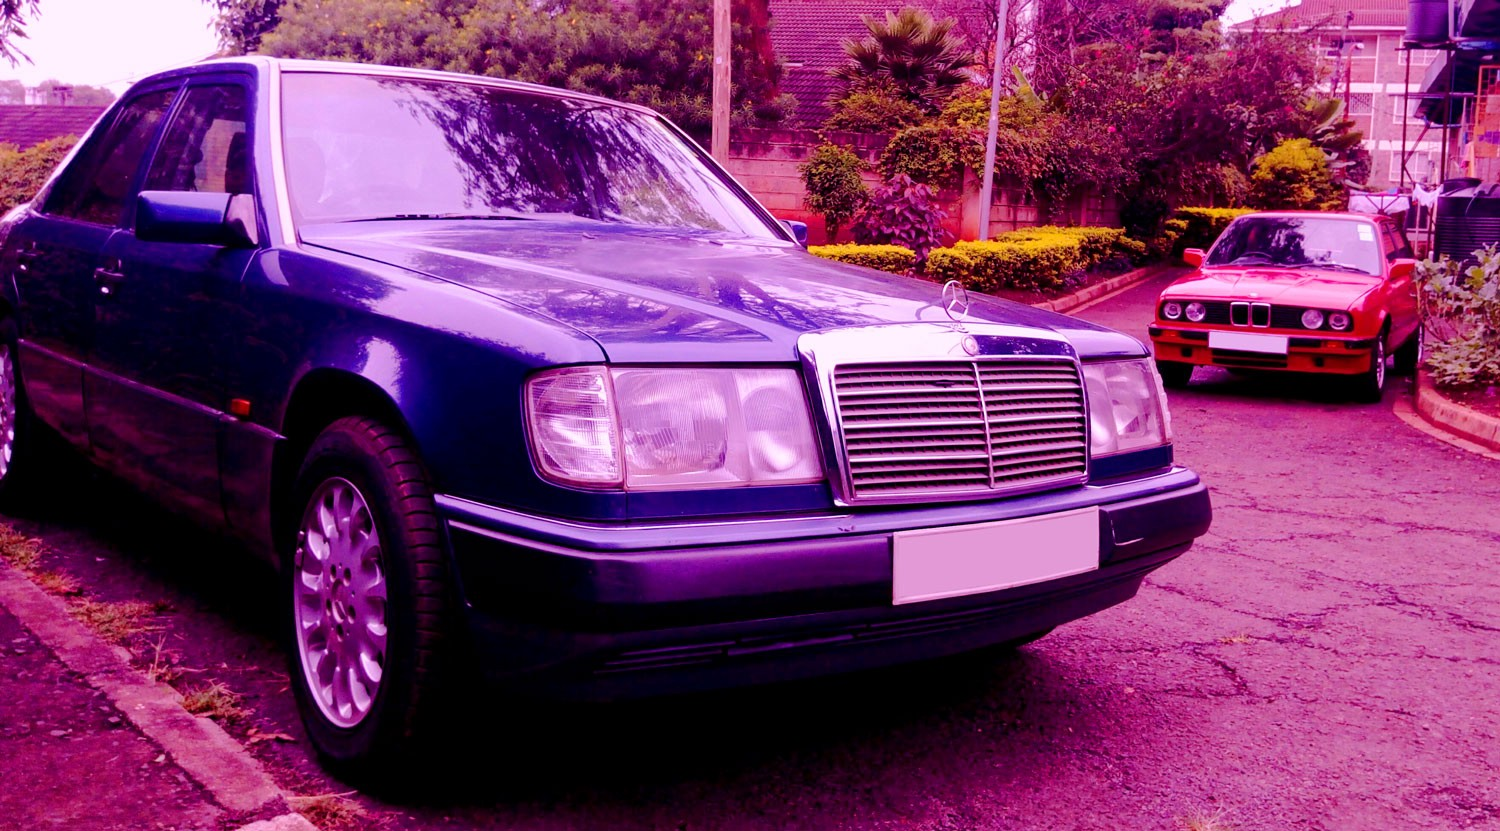 Rebuilding The Fuel Distributor Metering Unit On A 1992 Mercedes Benz Filters 200e M102 Engine